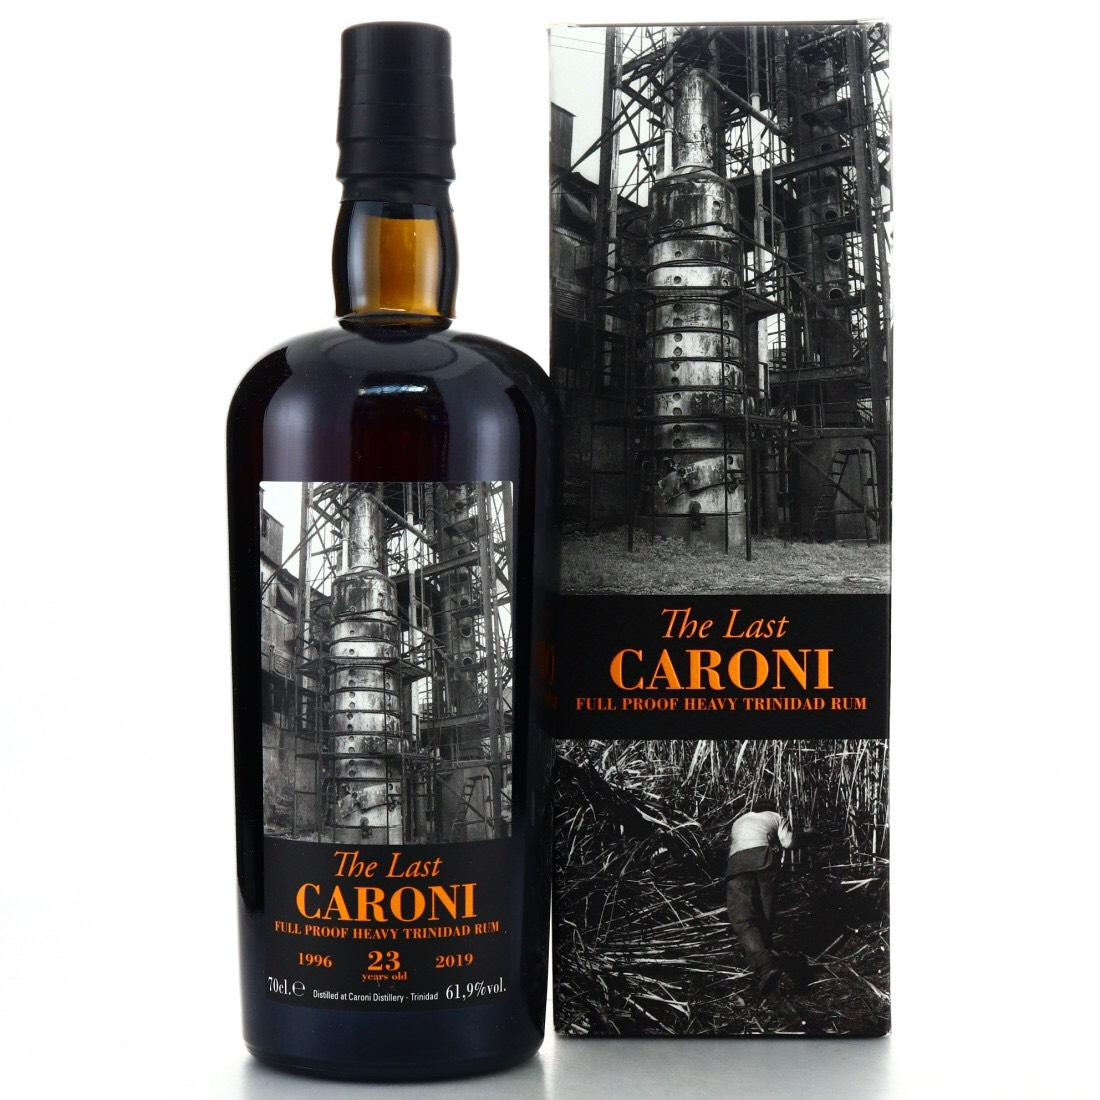 Bottle image of 39th Release The Last Heavy Trinidad Rum